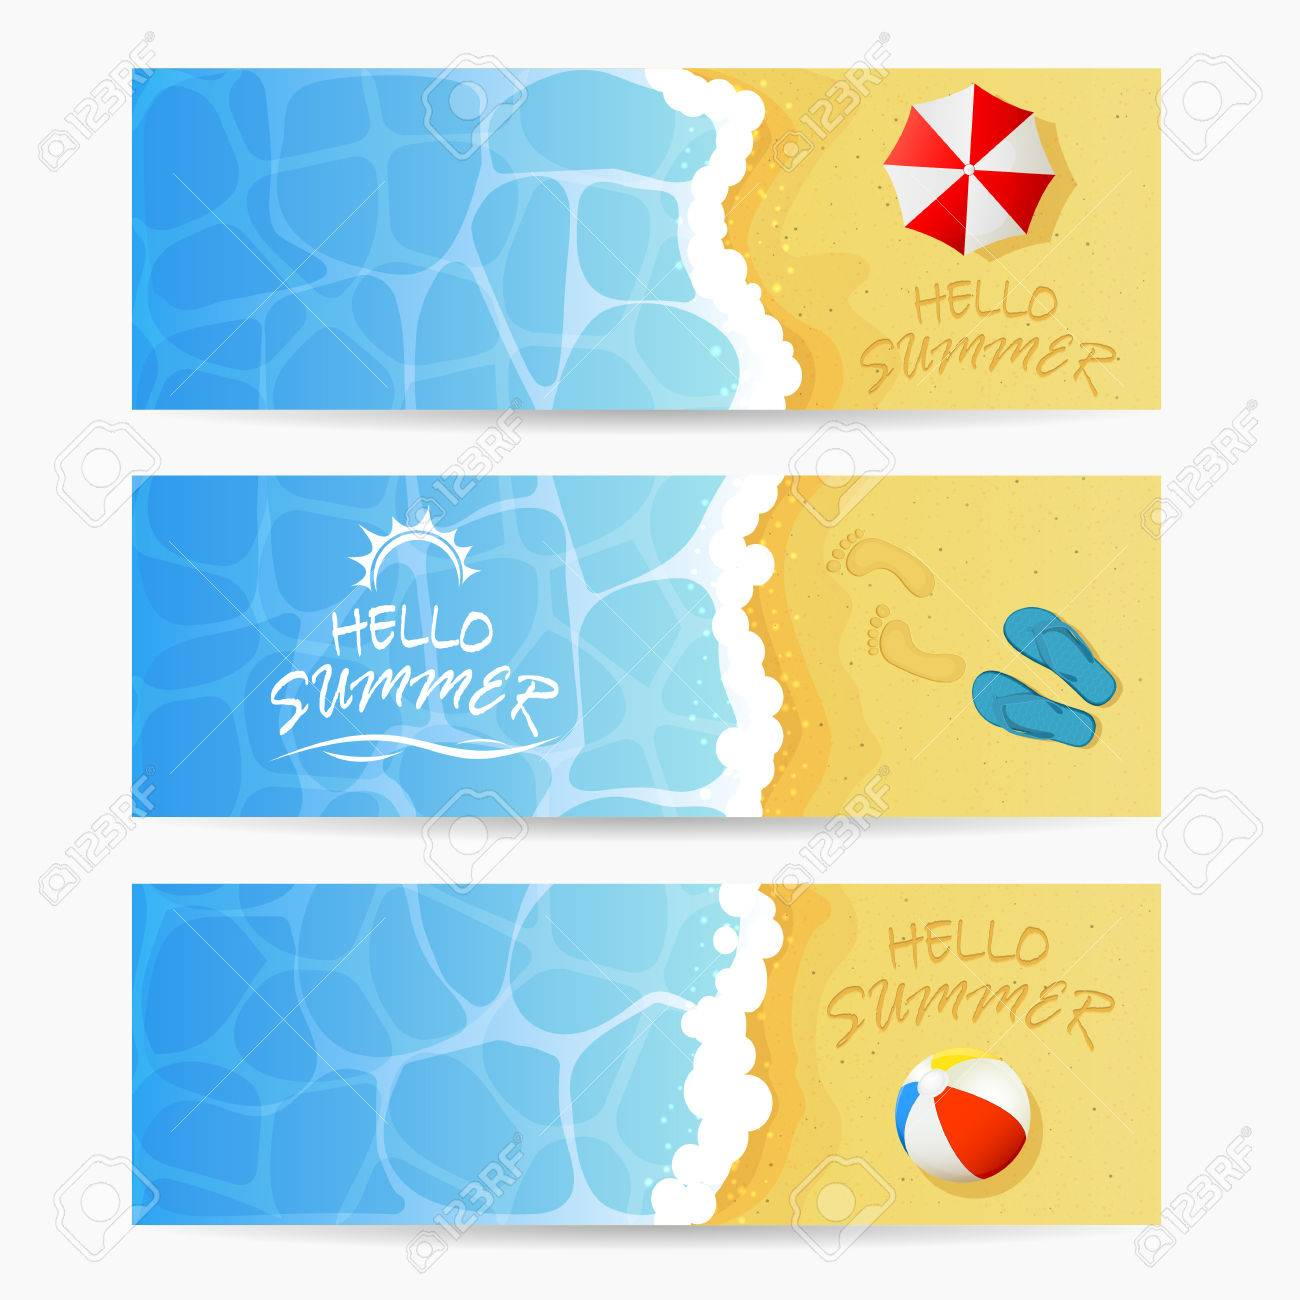 Beach theme, set of cards, inscription Hello Summer and ocean wave on a sandy beach with colored beach ball, flip flops with footprints and beach umbrella, Summer vacation on the beach, illustration. - 58022156